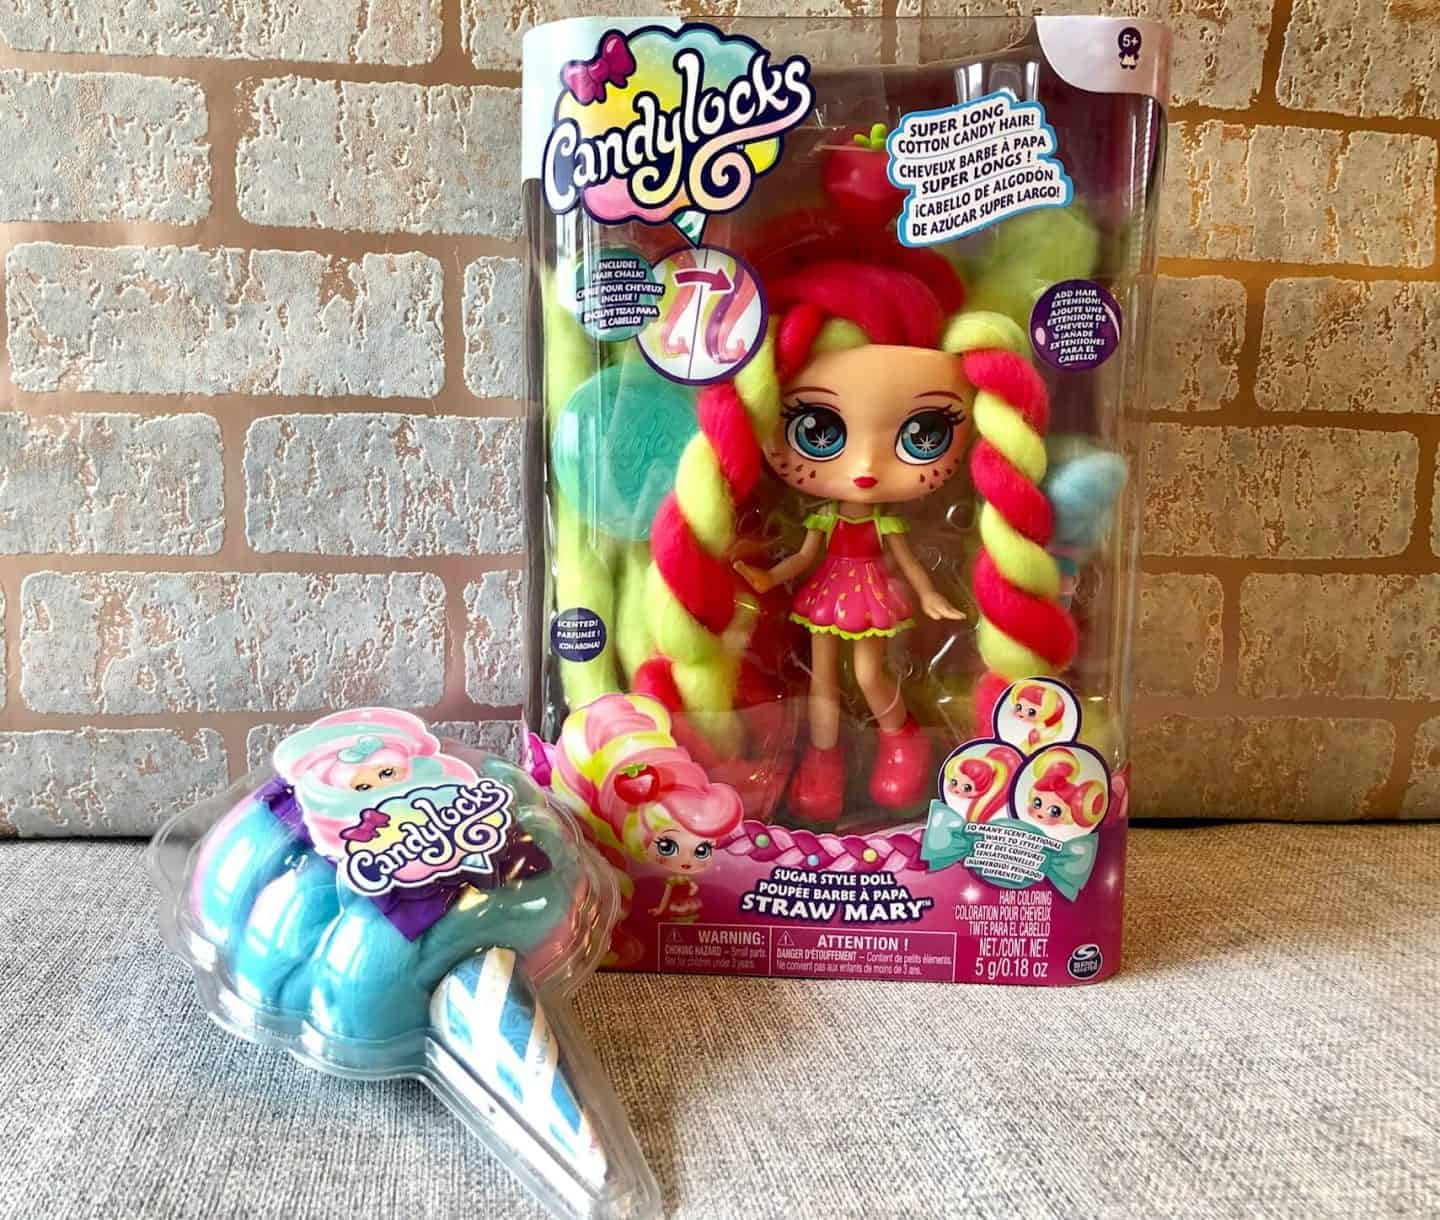 Candylocks Dolls - With Super Long Cotton Candy Hair